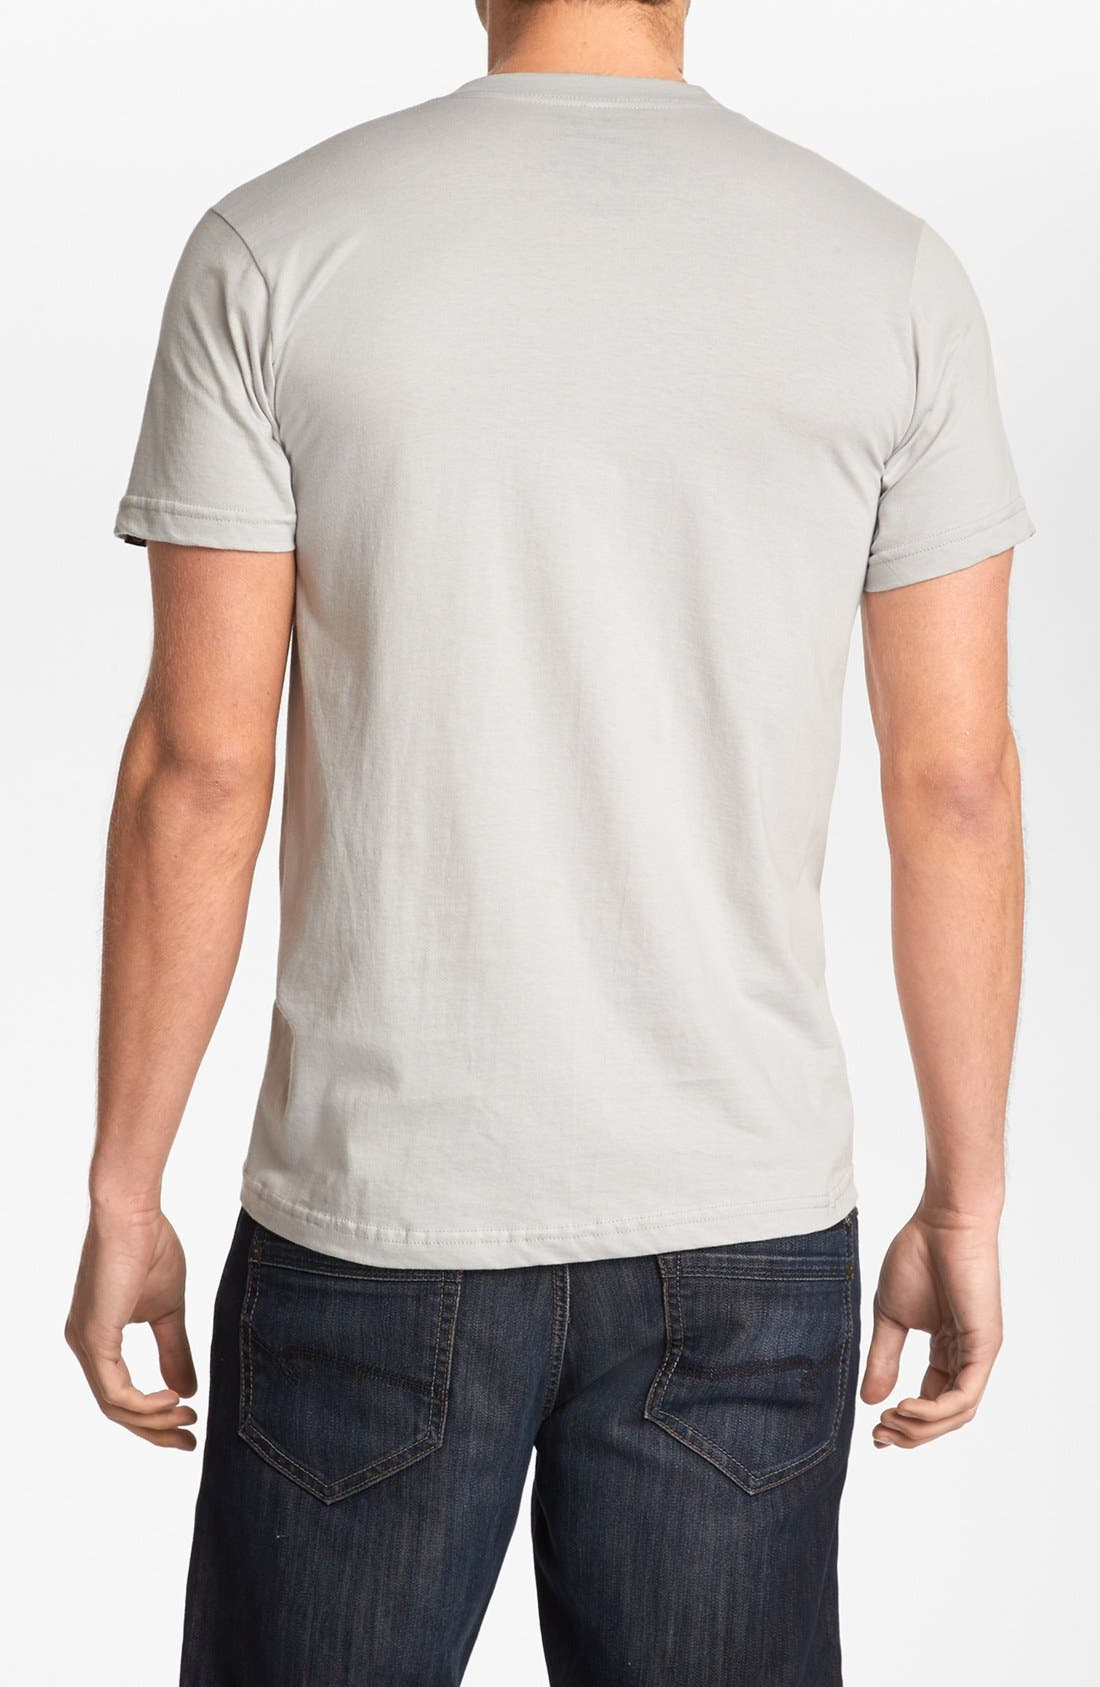 CASUAL INDUSTREES,                             'OR Brah Map' T-Shirt,                             Alternate thumbnail 2, color,                             045